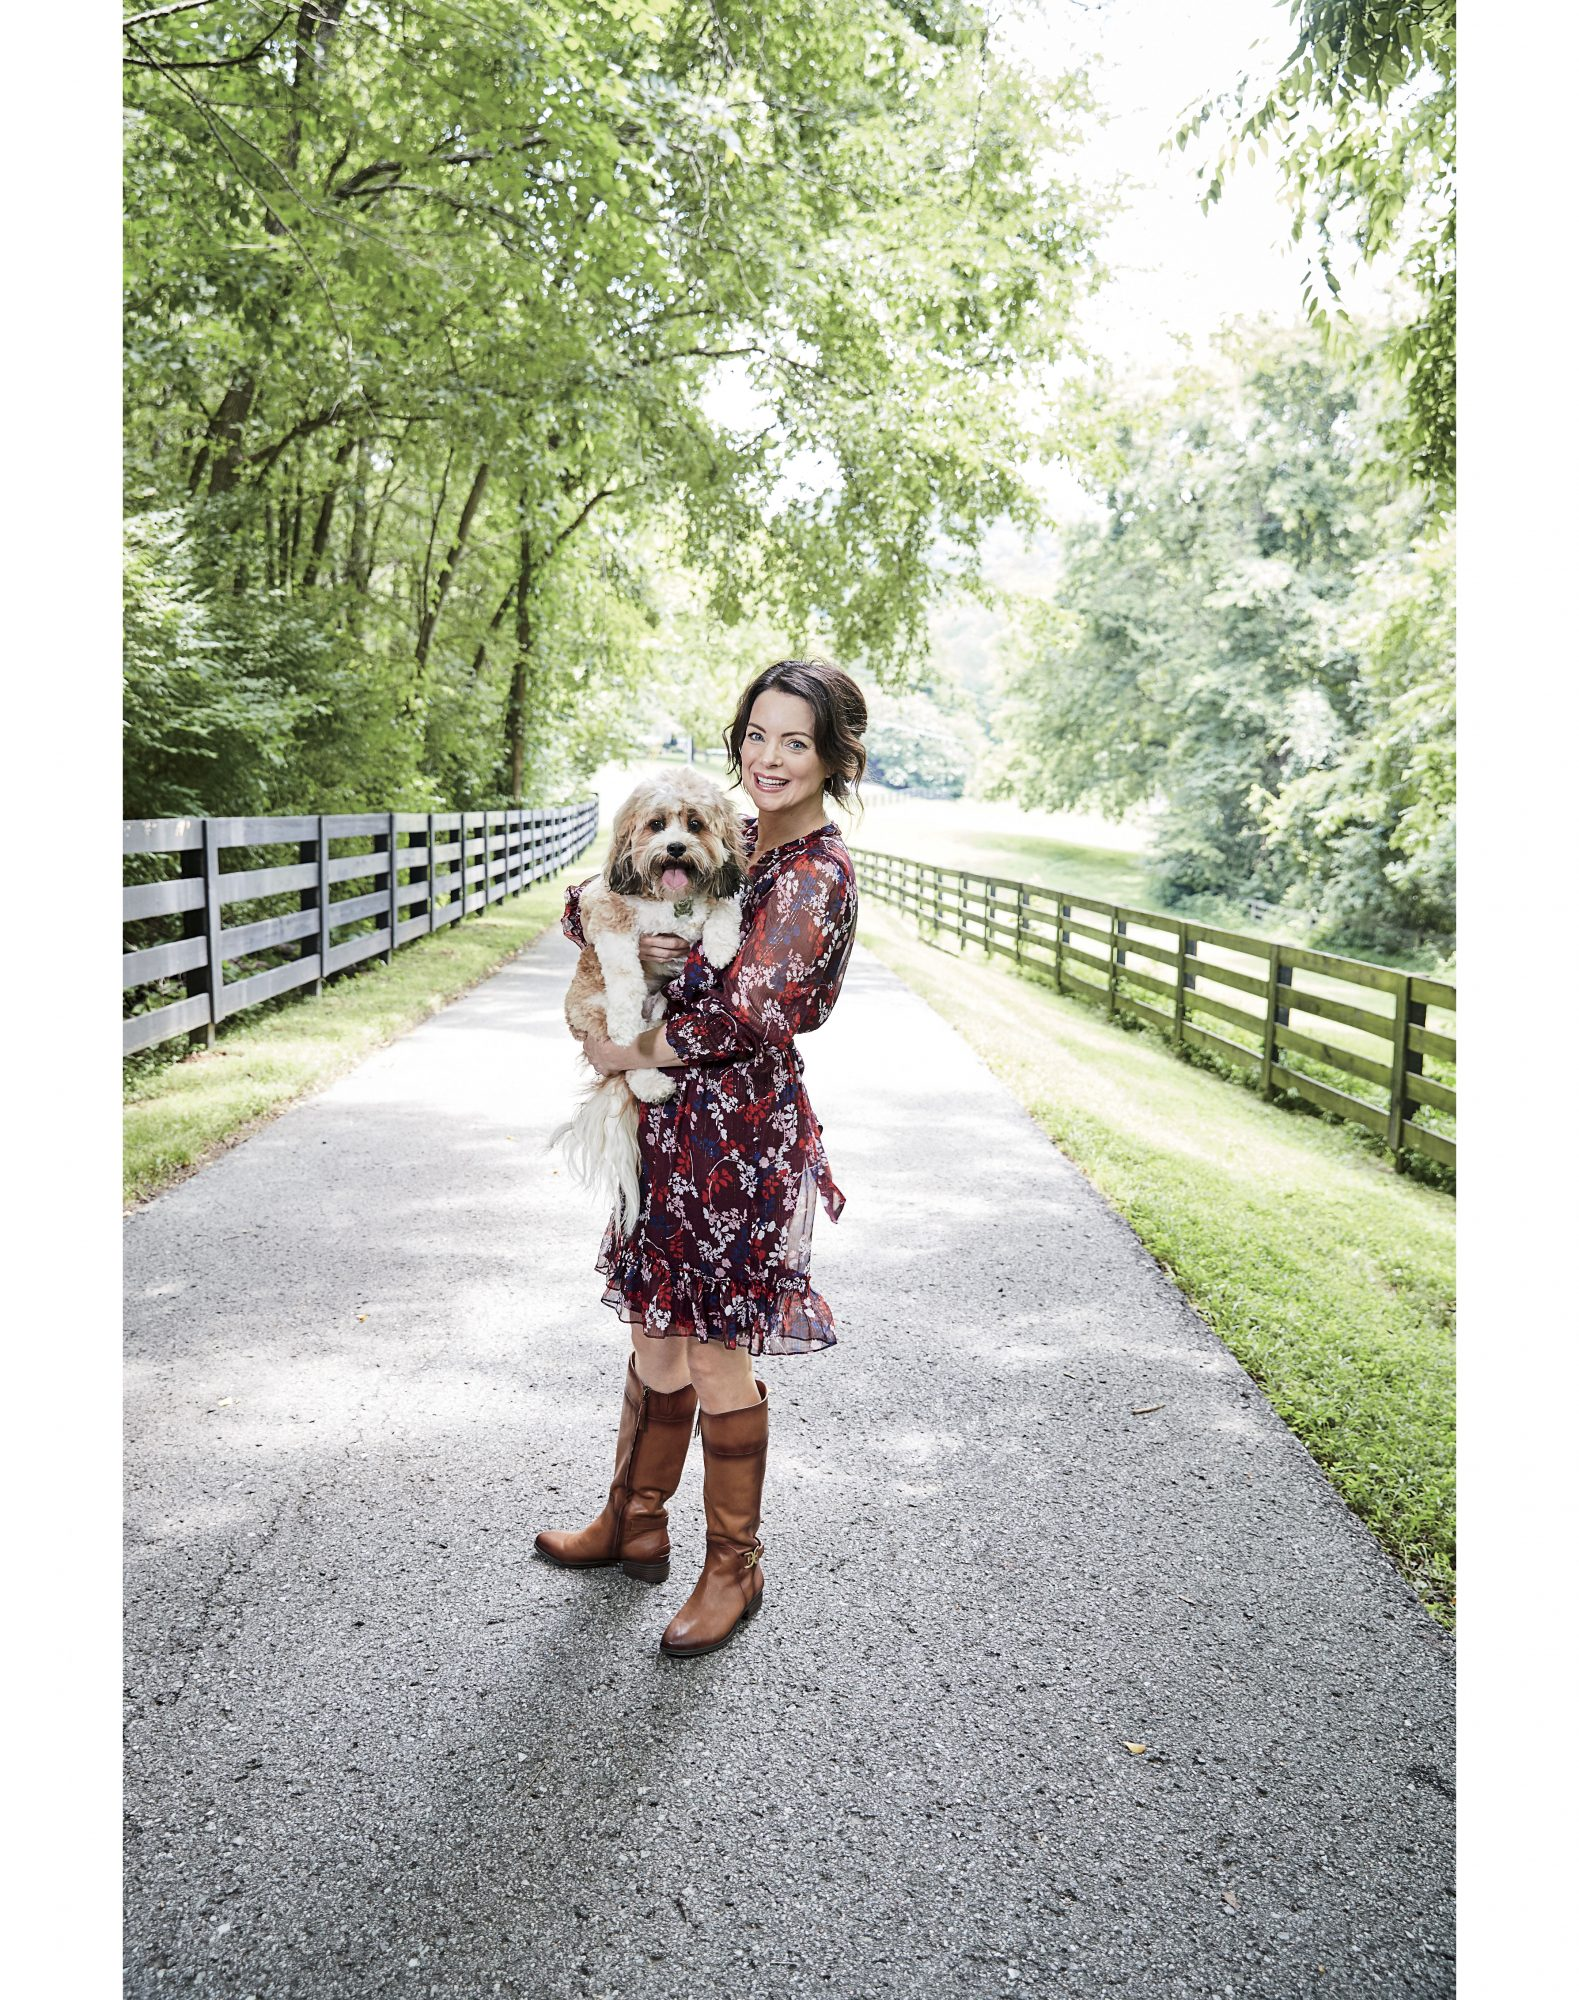 Actress Kimberly Williams-Paisley Talks Style, Cooking Turkey, and How She Fell in Love with Franklin, Tennessee